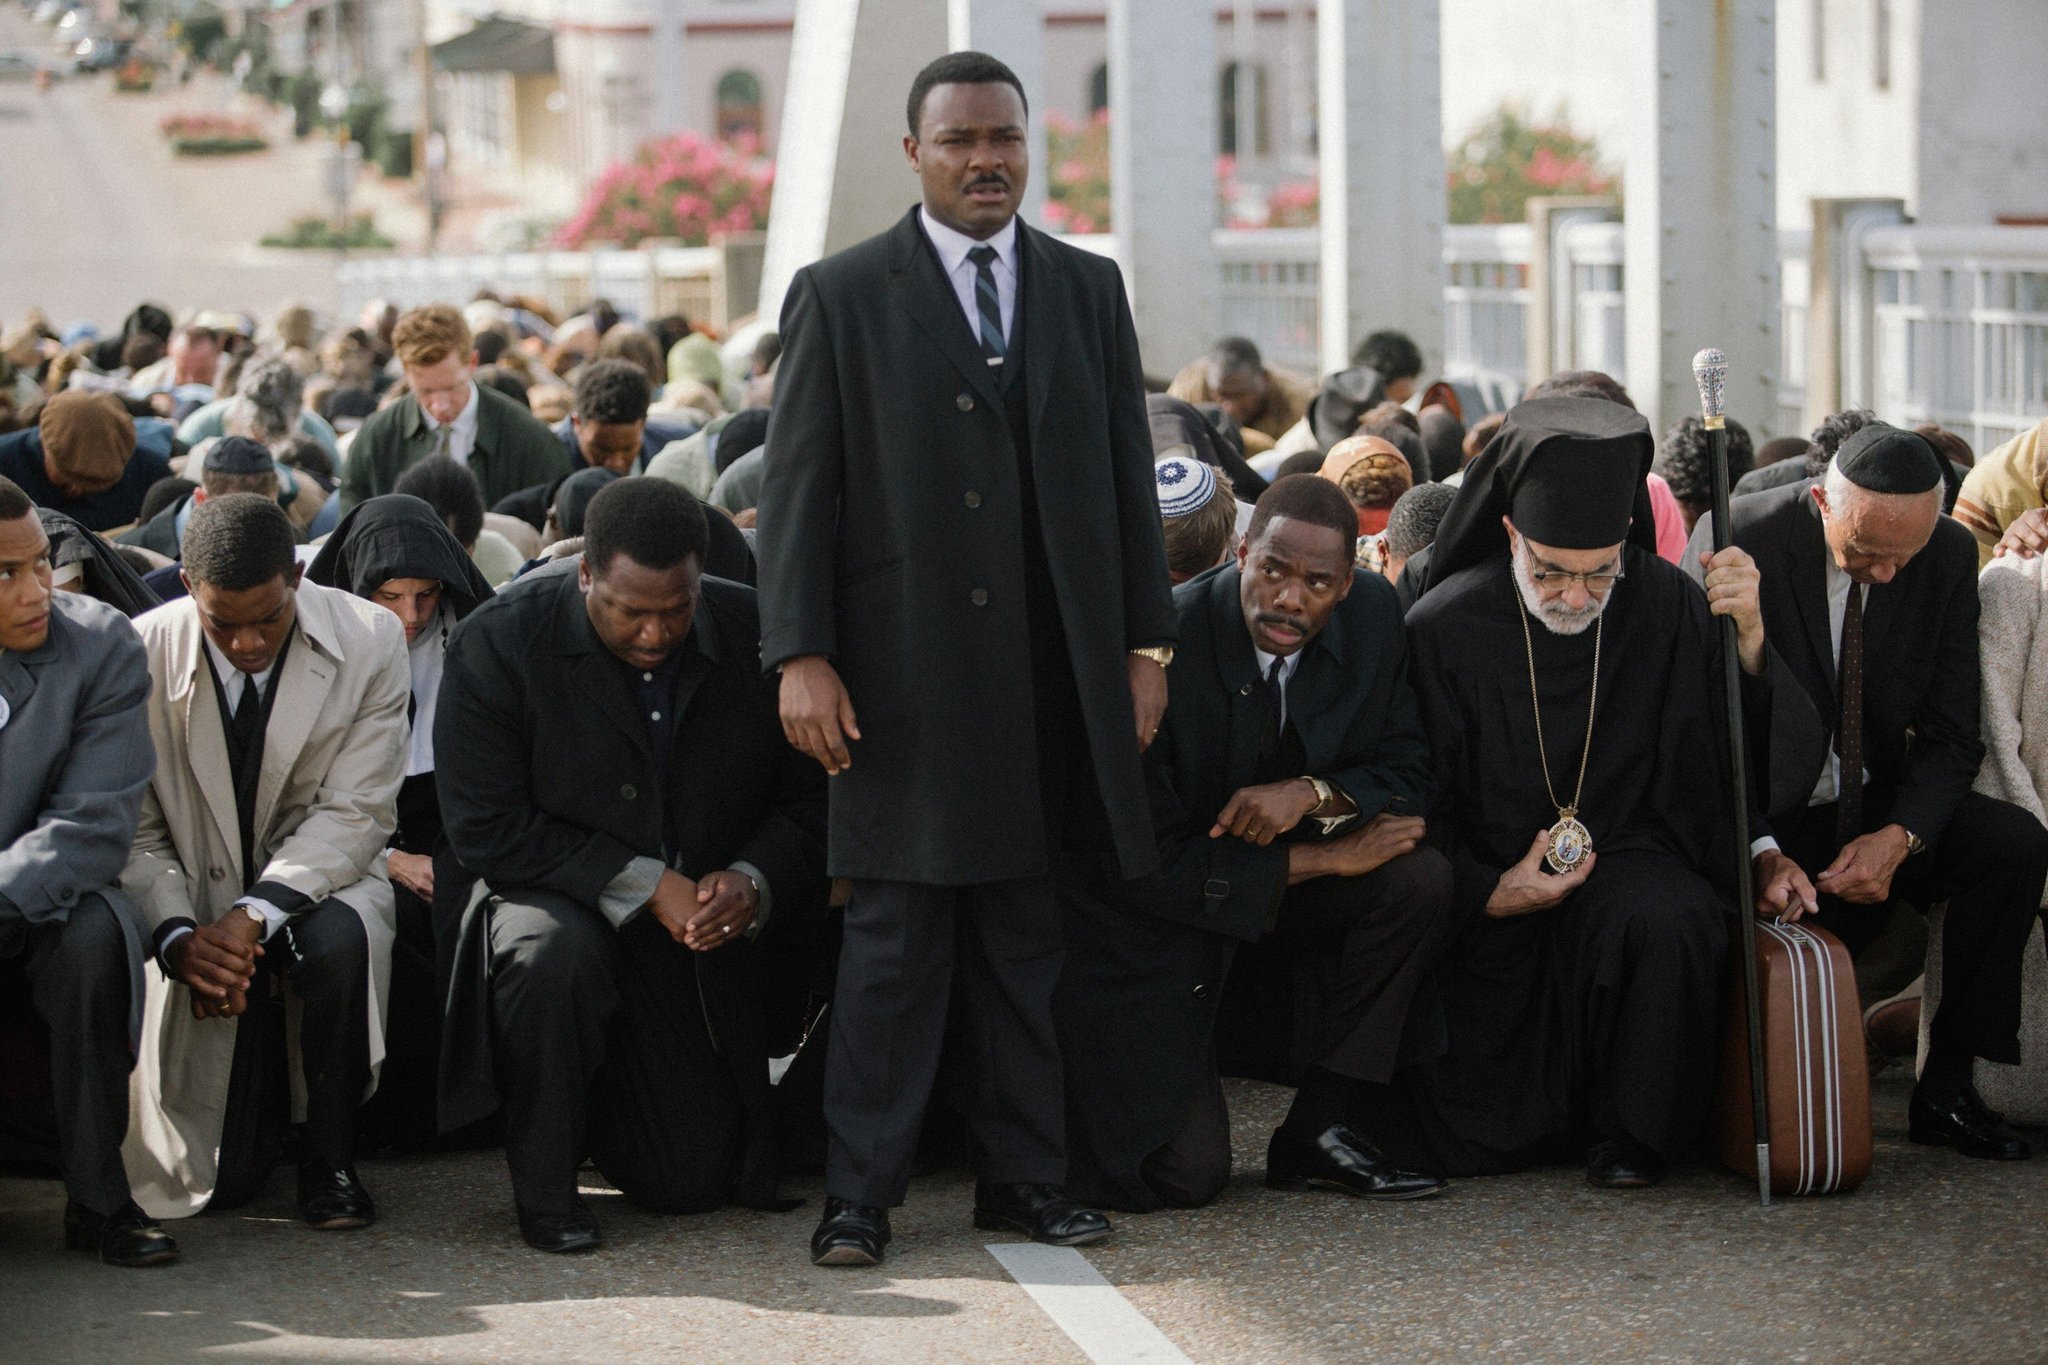 Center left to right: Wendell Pierce plays Rev. Hosea Williams, David Oyelowo plays Martin Luther King, Jr., and Colman Domingo plays Ralph Abernathy in the movie SELMA, from Paramount Pictures and PathZÿ.